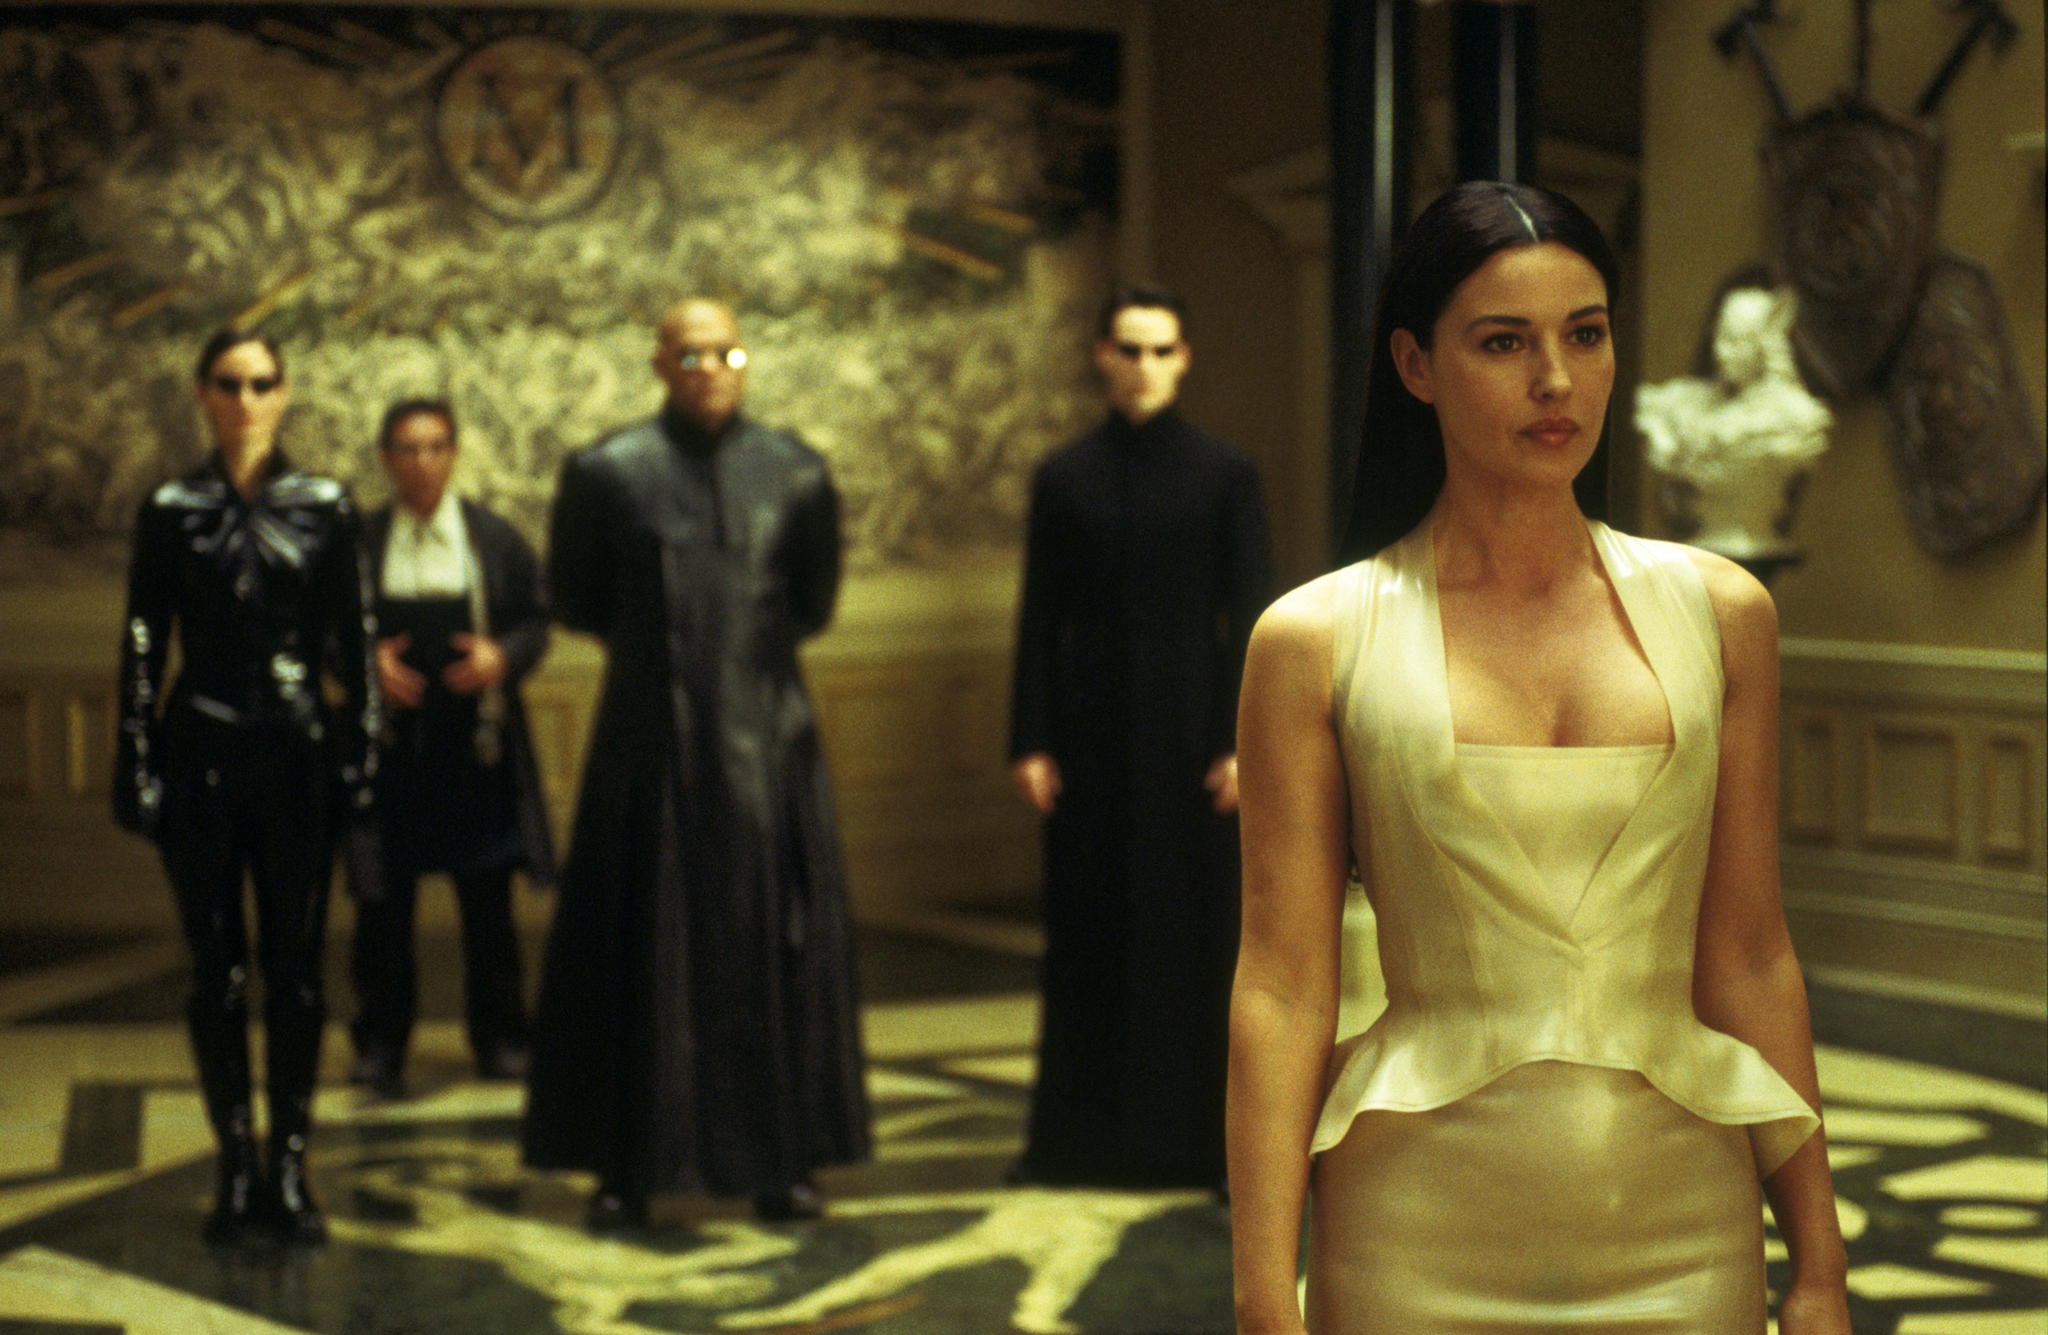 Keanu Reeves, Laurence Fishburne, Monica Bellucci, Carrie-Anne Moss, and Randall Duk Kim in The Matrix Reloaded (2003)